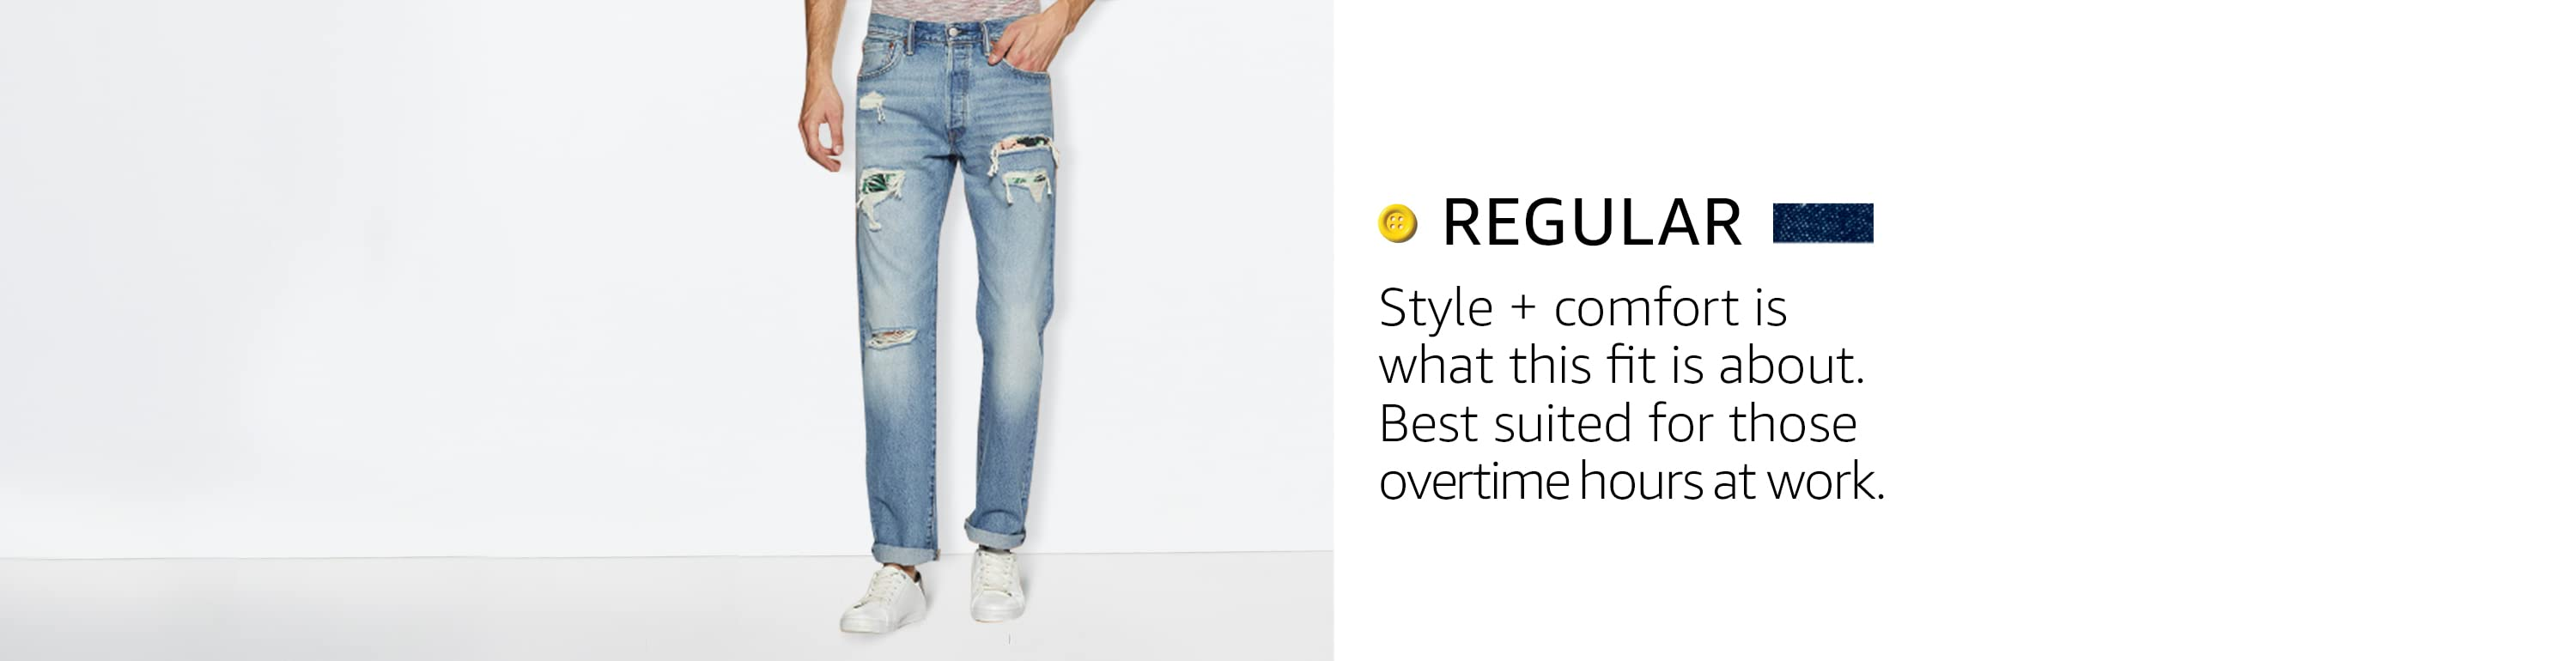 d8ad346f5 Jeans: Buy Jeans For Men online at best prices in India - Amazon.in